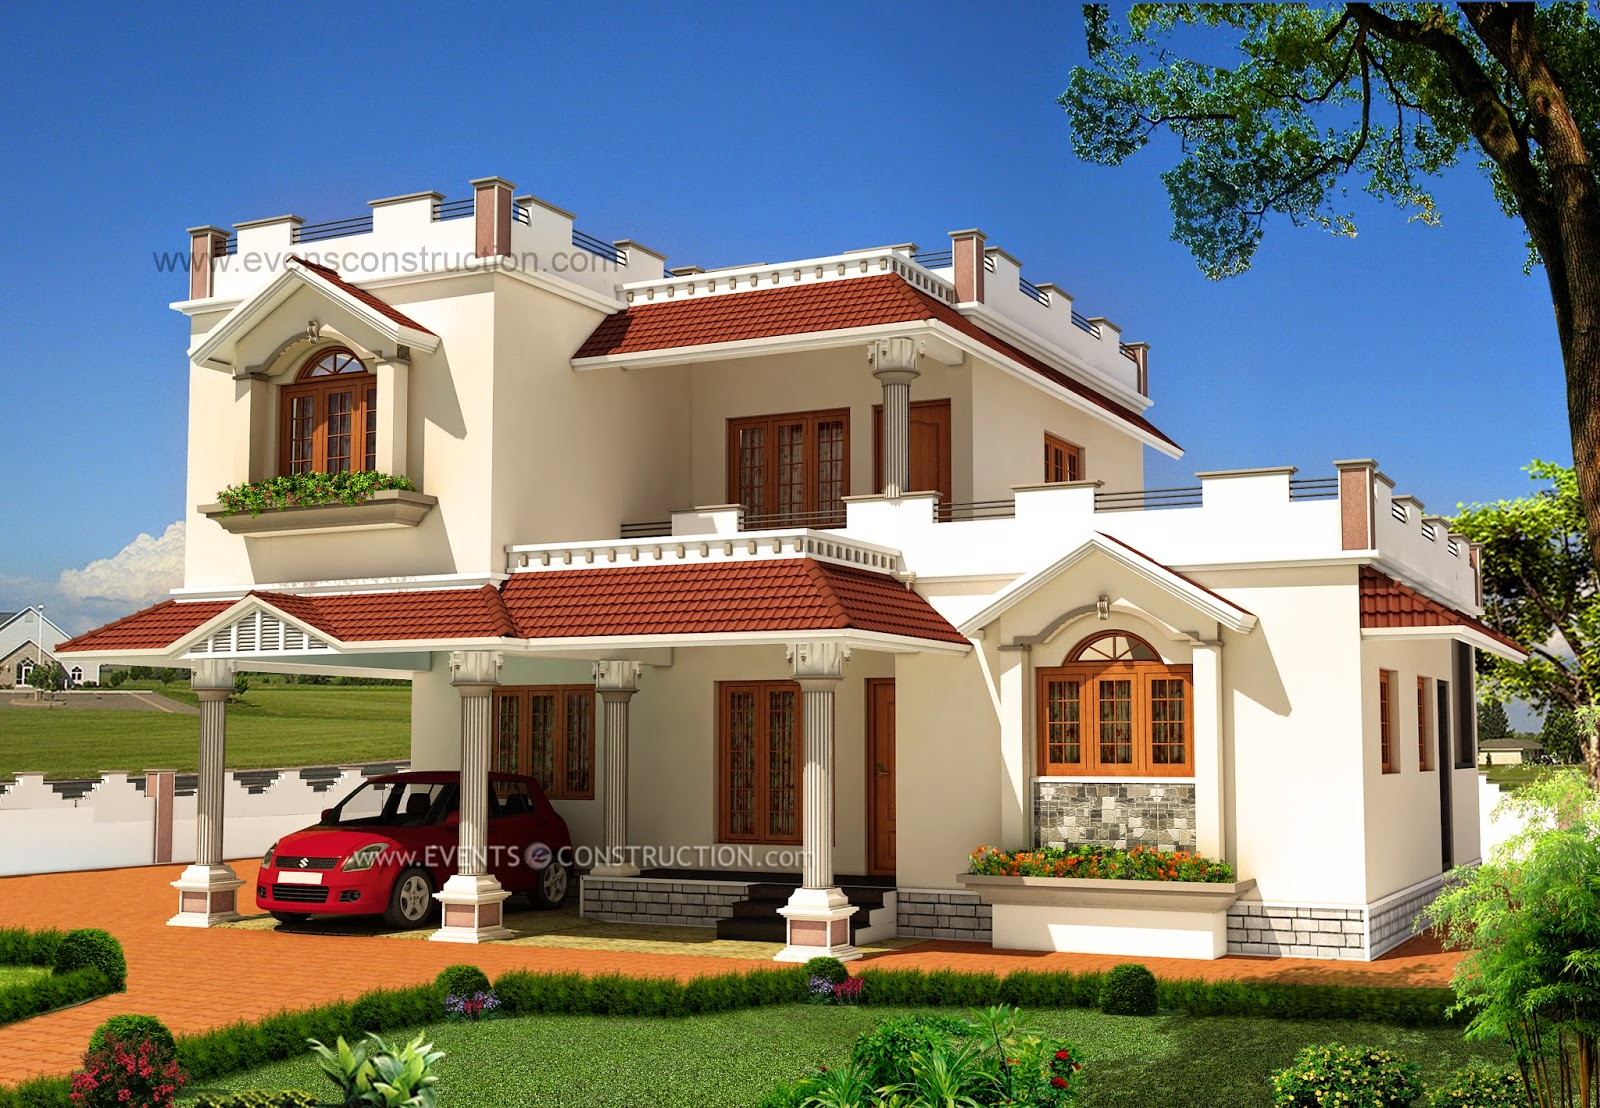 Evens construction pvt ltd exterior design of house in india for House structure design in india